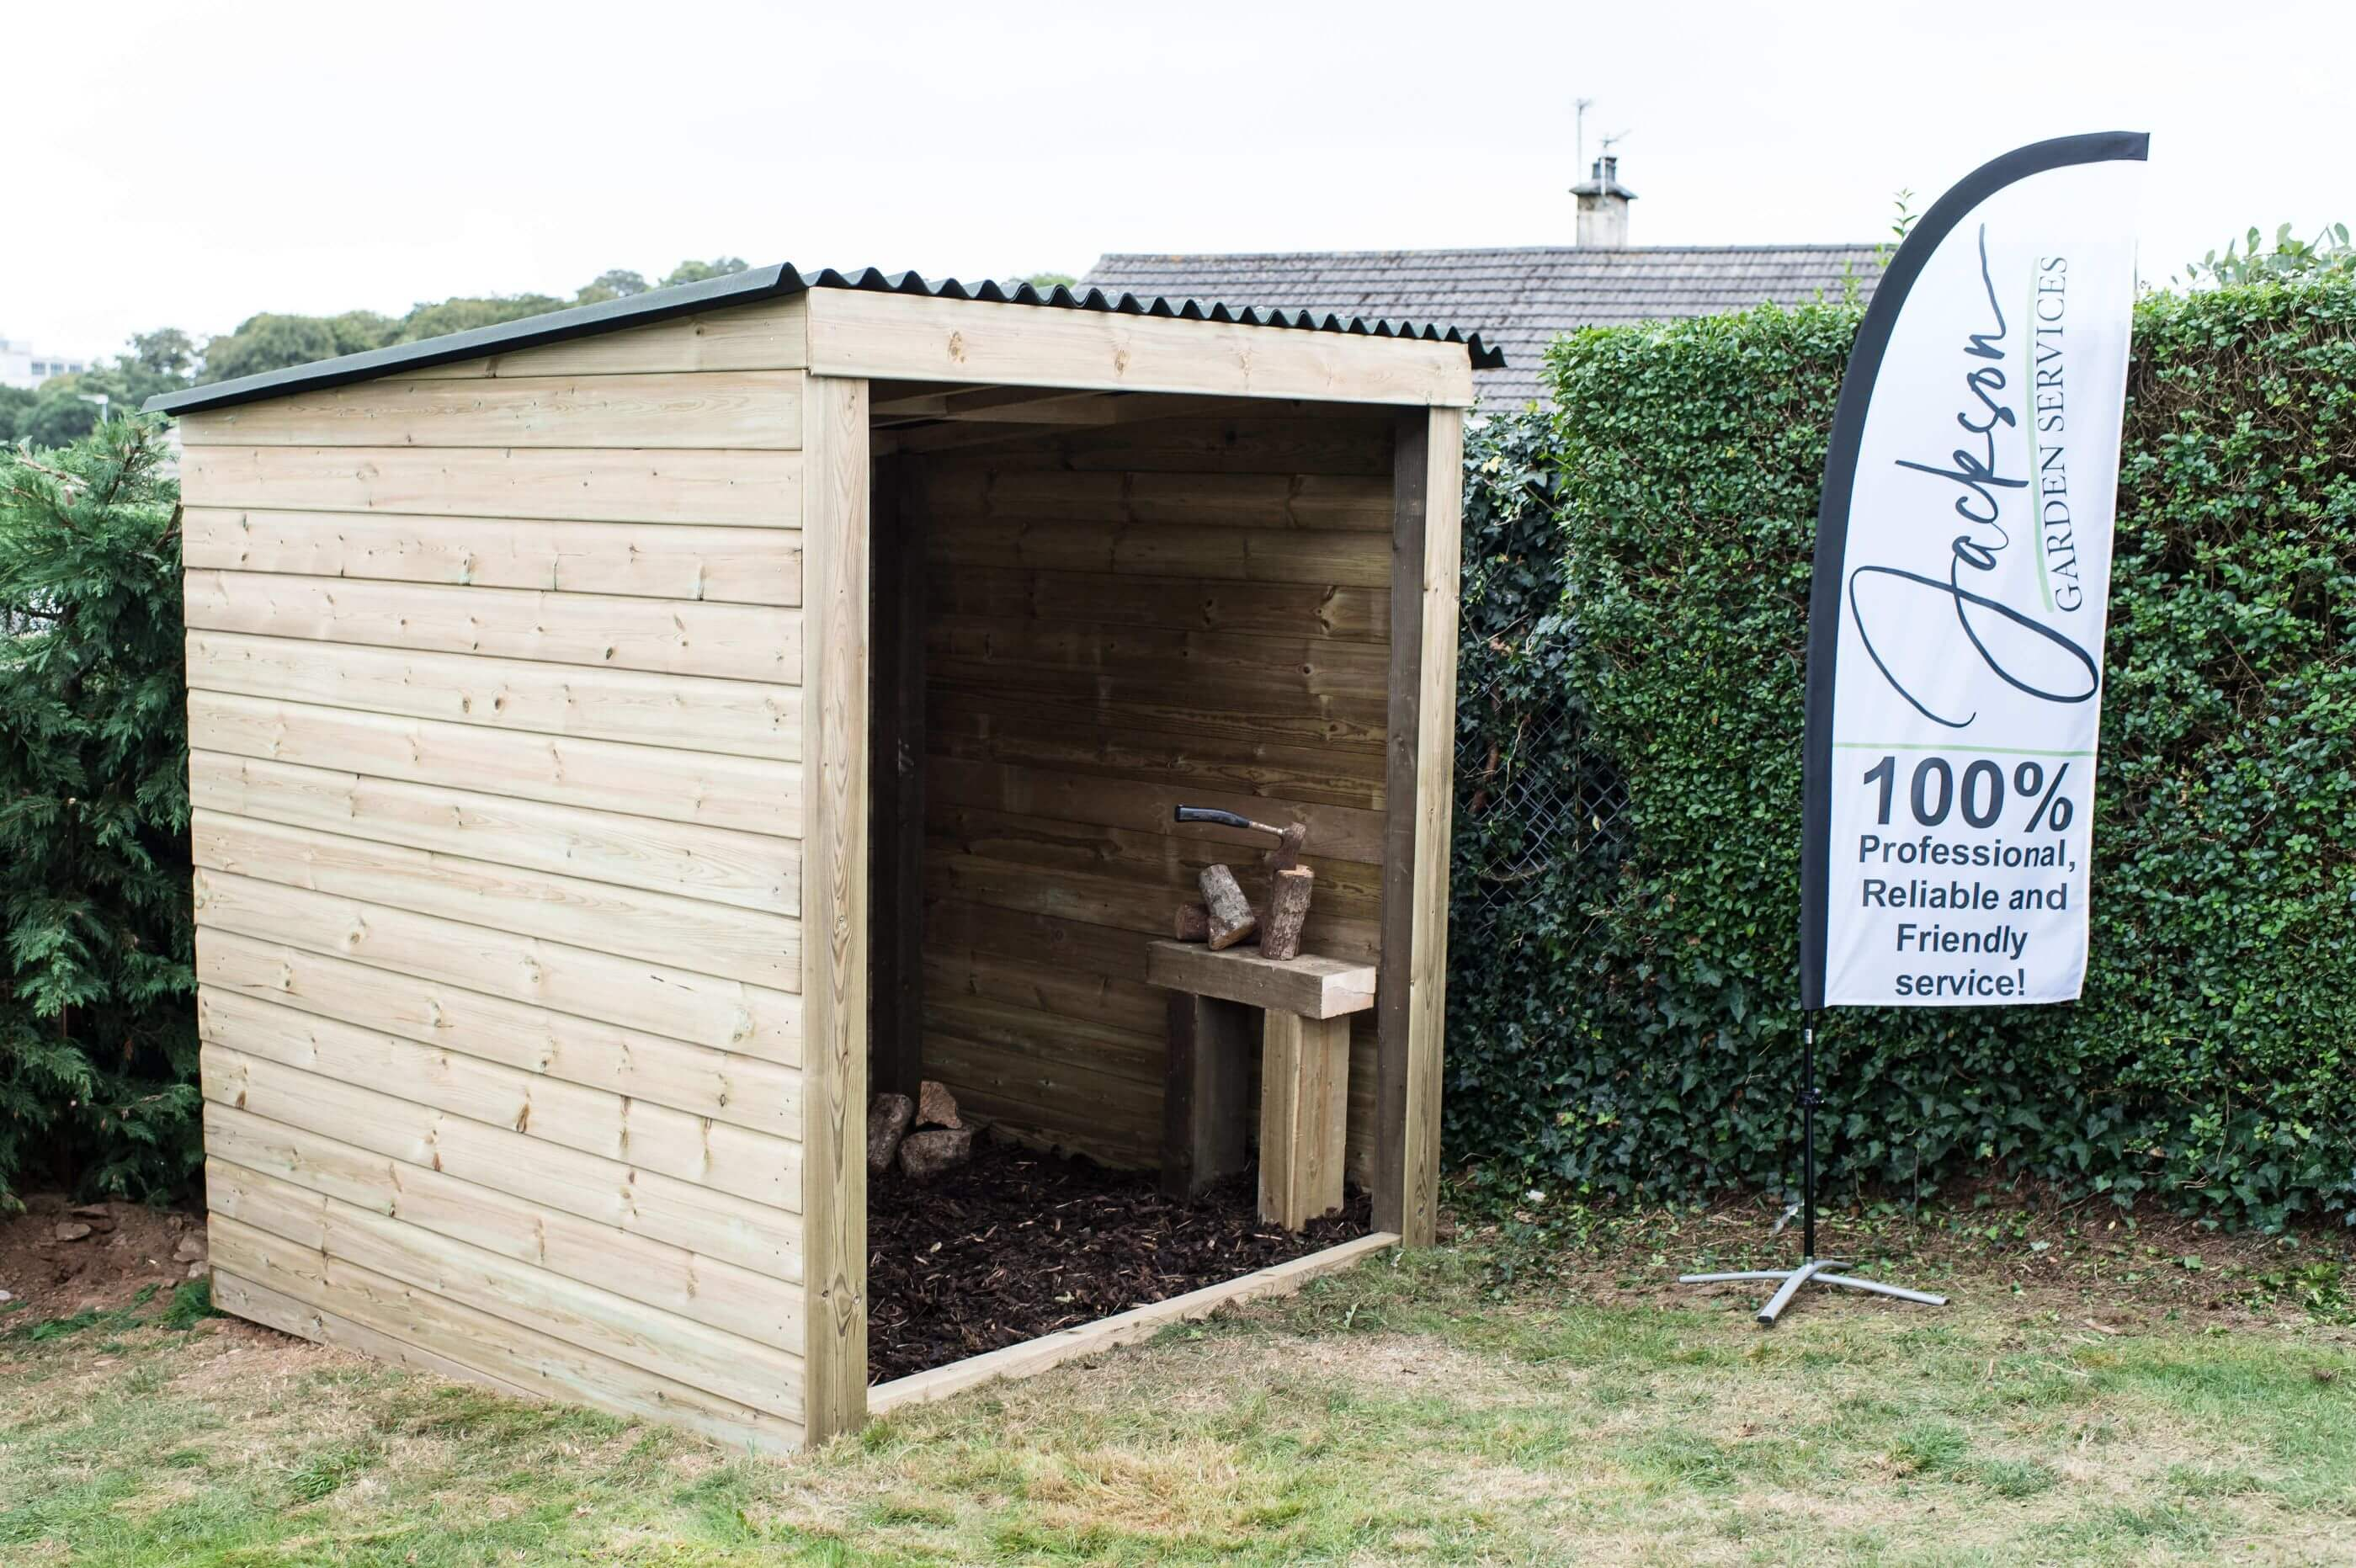 Sheds & Outbuildings - Image of a wooden log store garden shelter next to a Jackson Garden Services flag